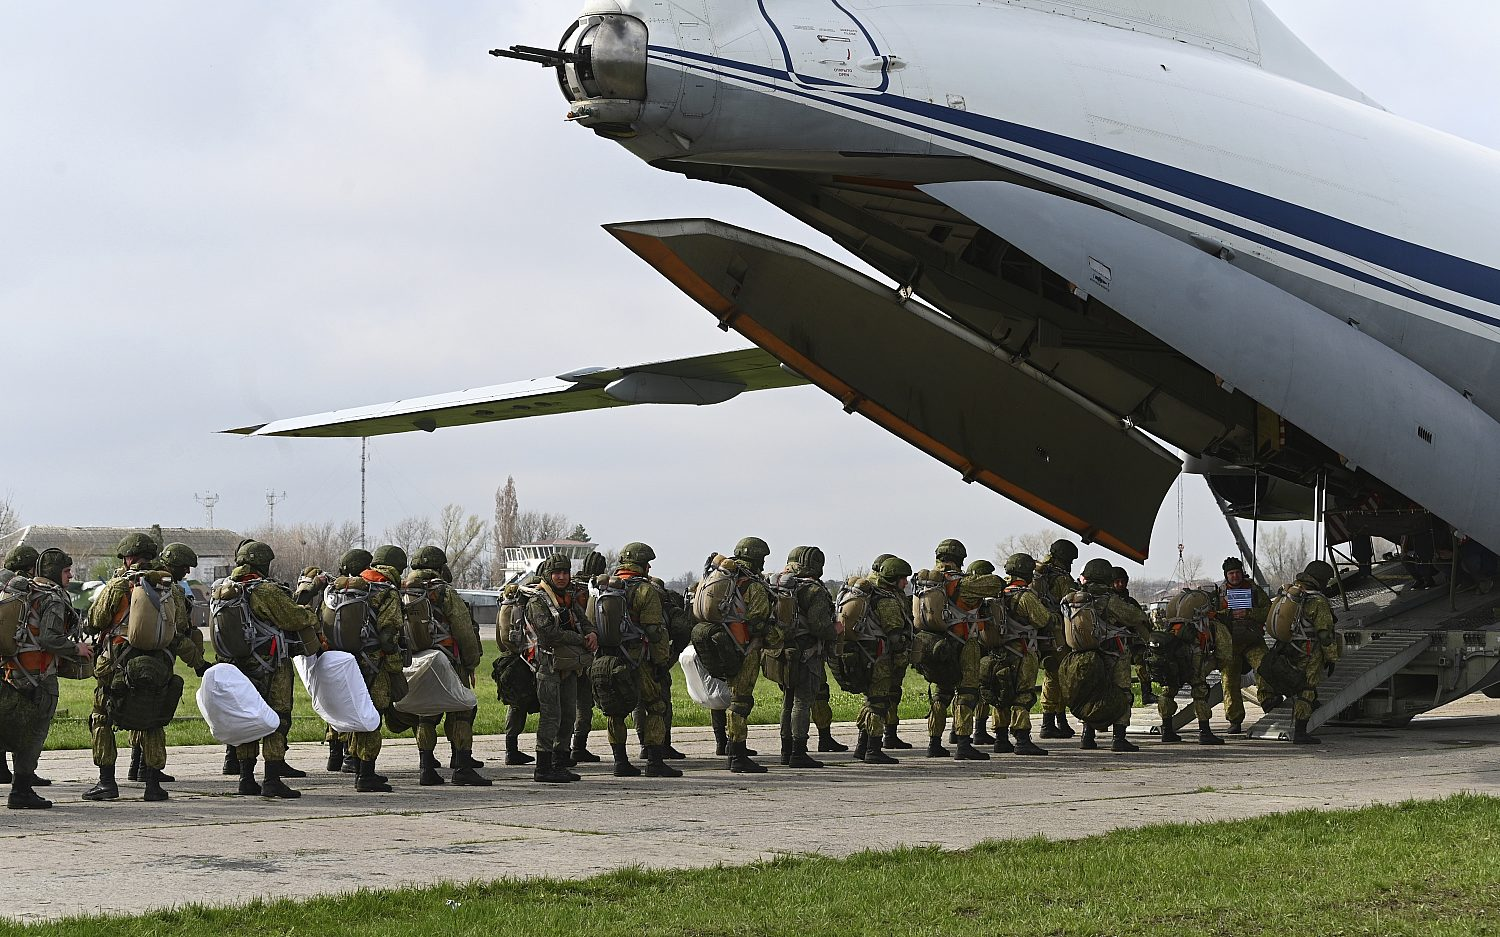 Russia pulls back troops from Ukraine border